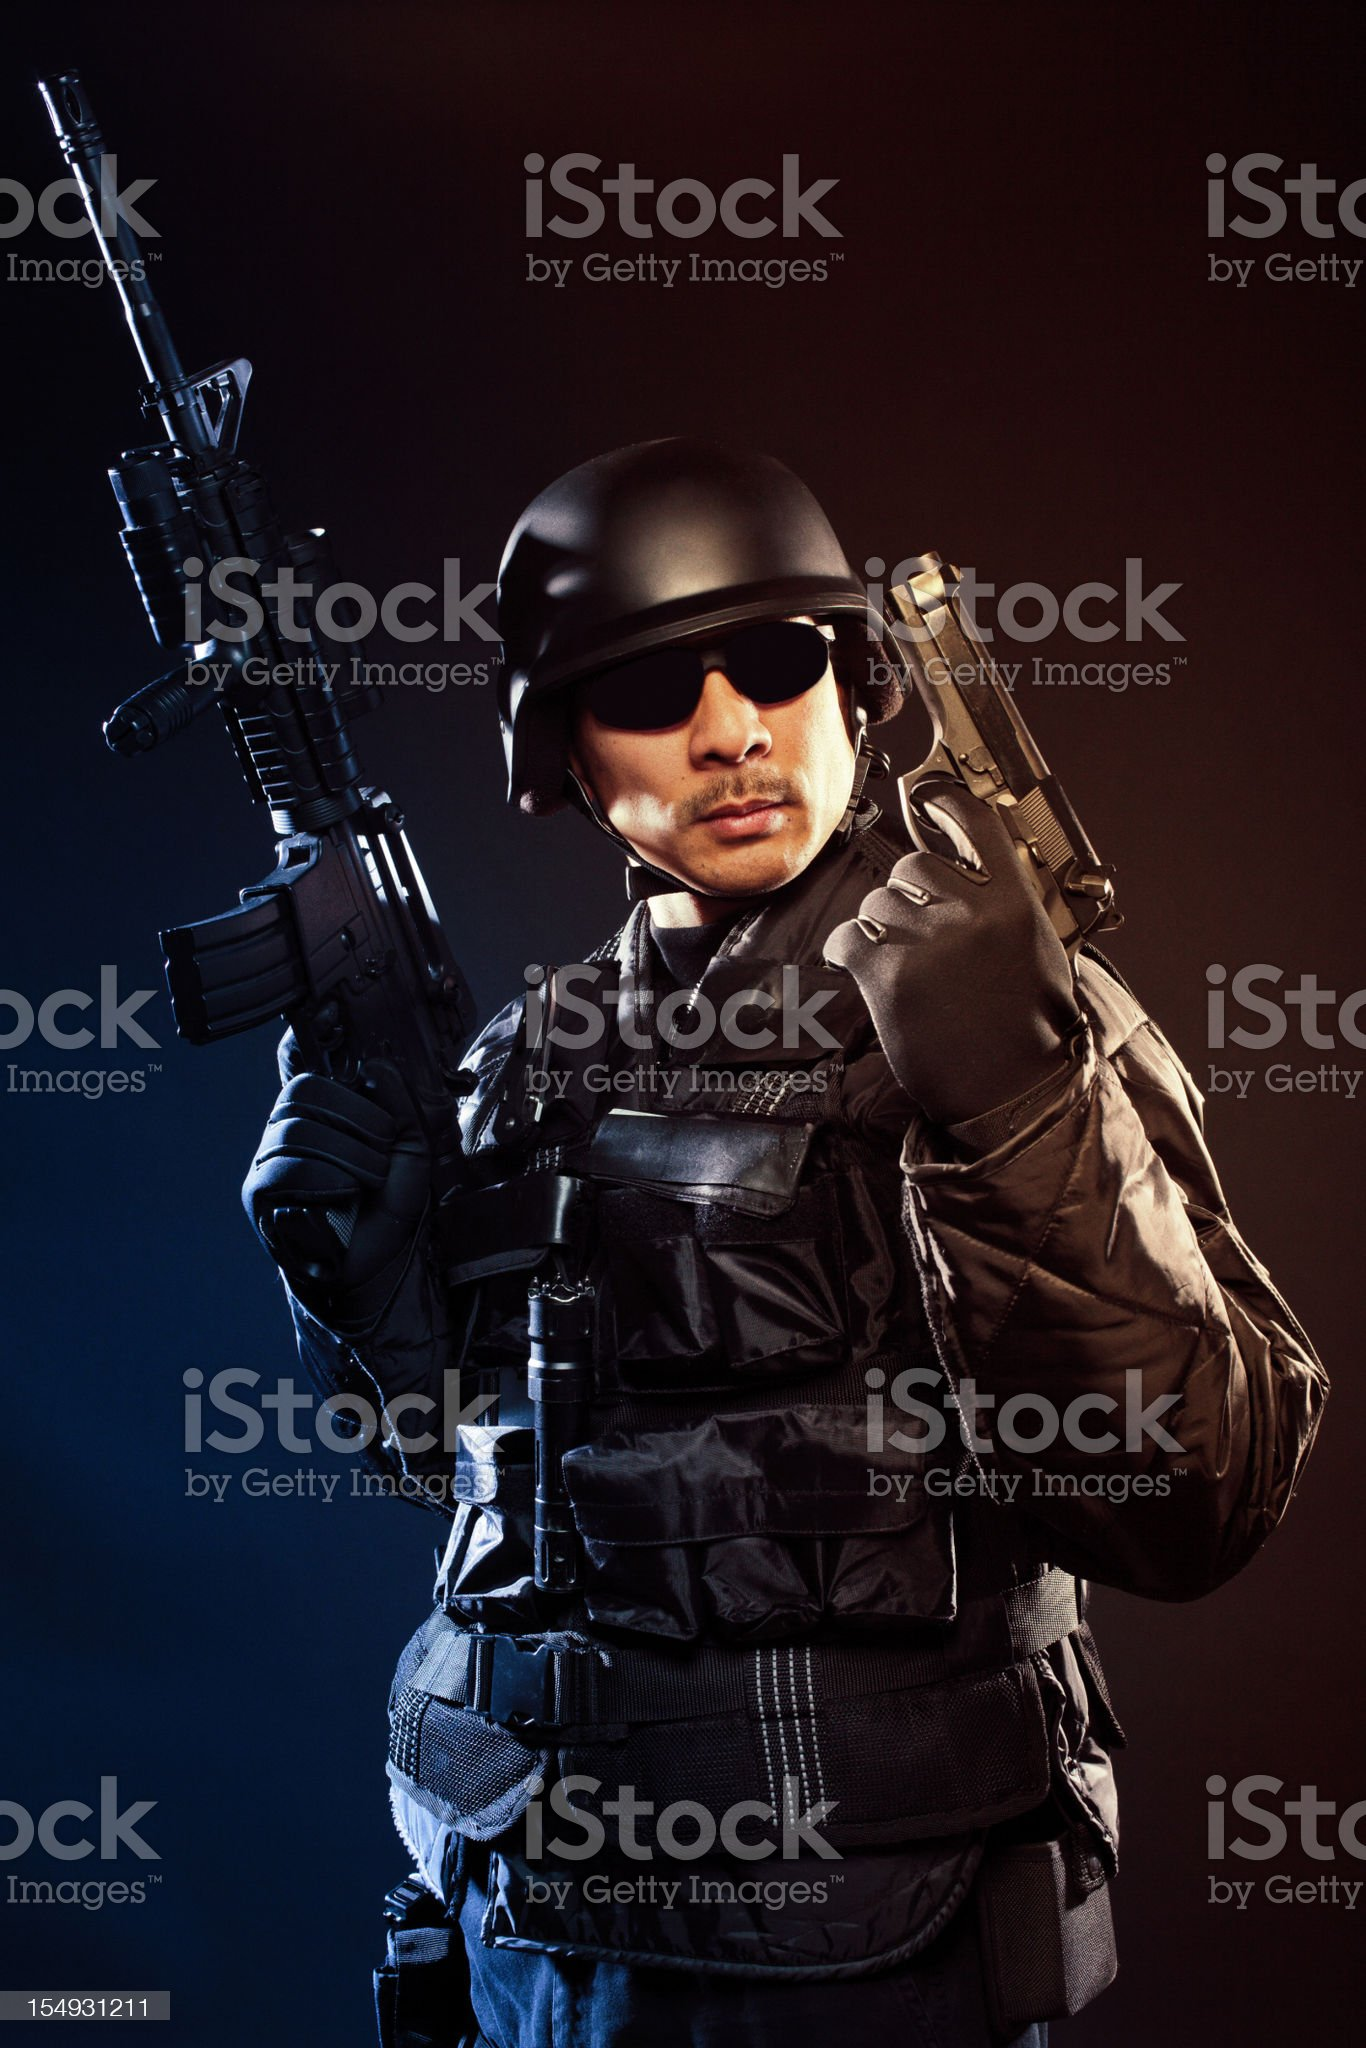 Swat team member holding a gun and colt royalty-free stock photo